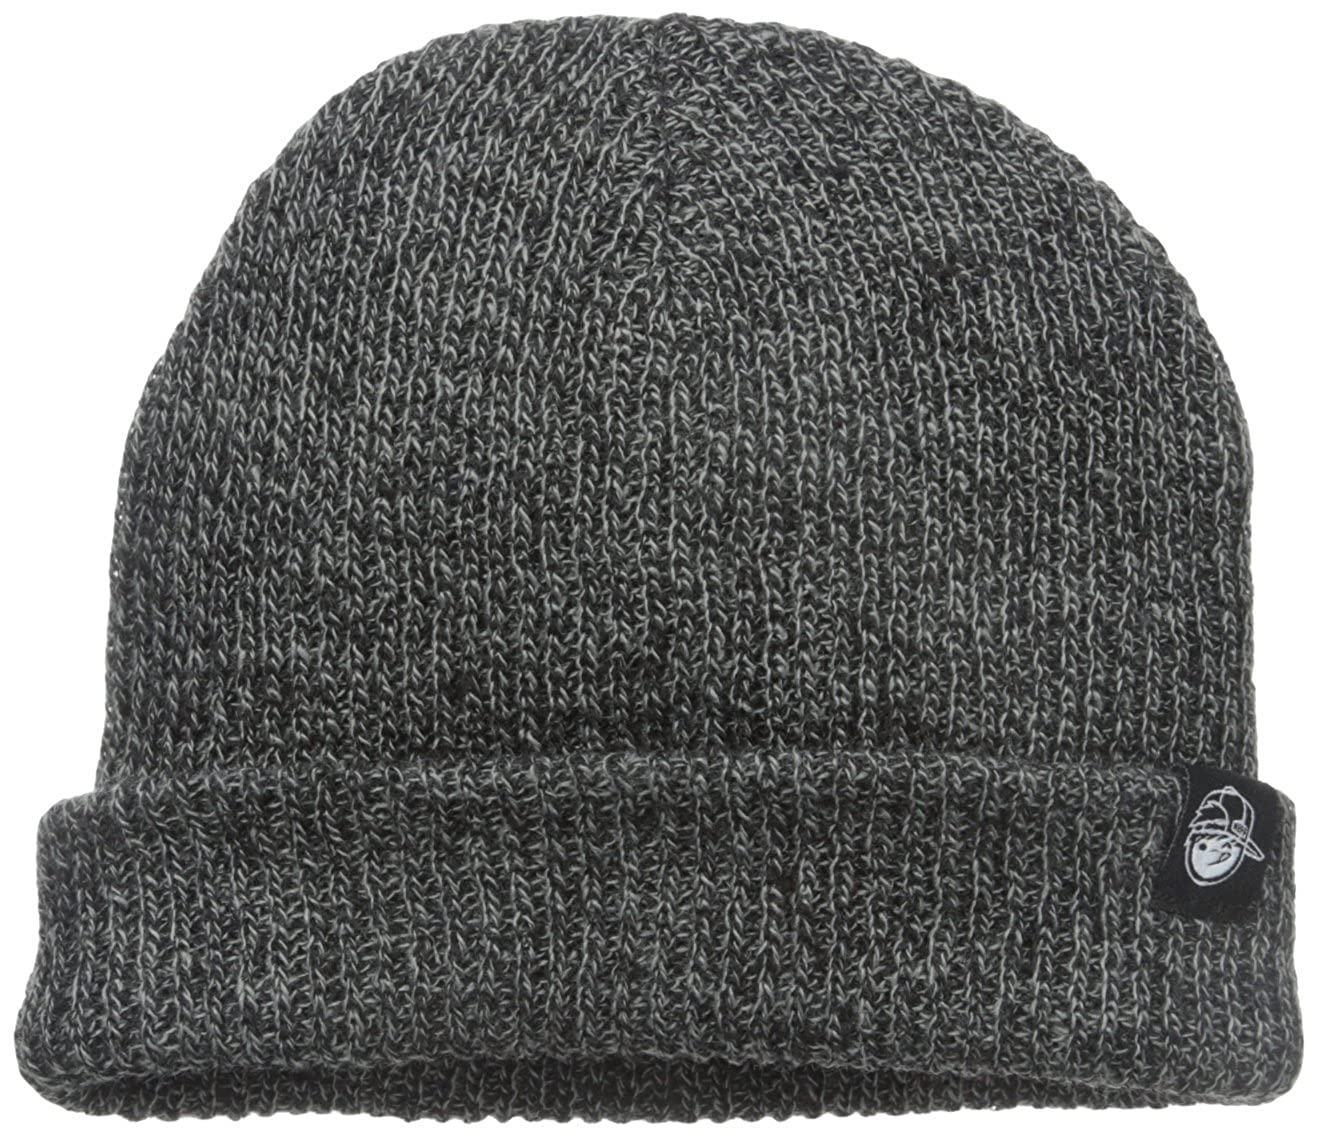 NEFF Boys' Youth Daily Heather Beanie Black/Grey One Size Neff Boys 8-20 15F06003-BKGY-One Size